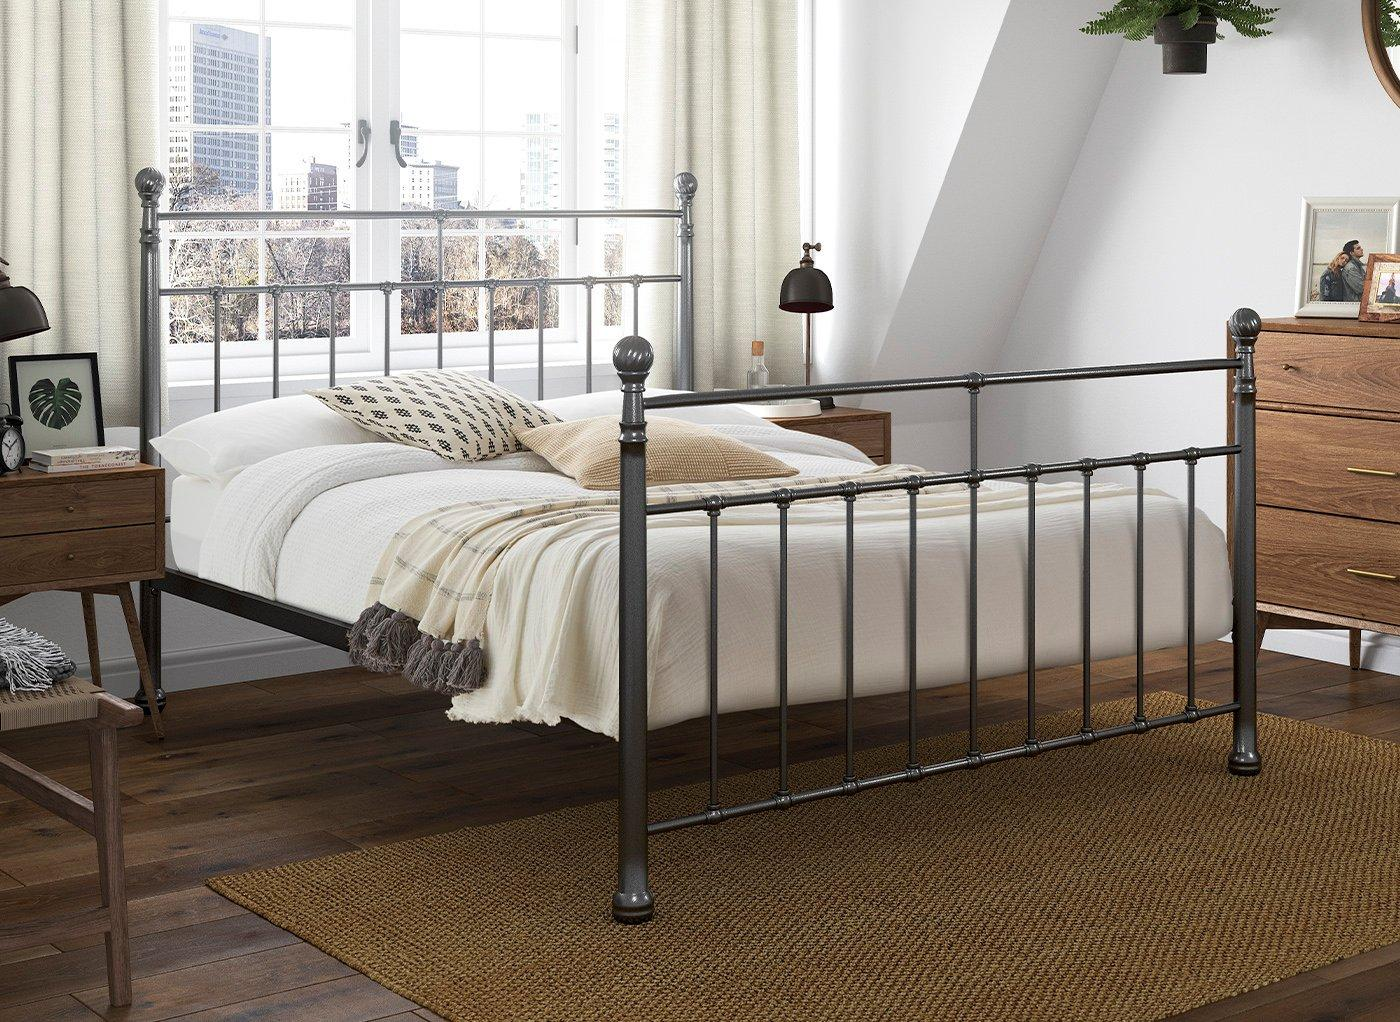 Davis Metal Bed Frame 5'0 King